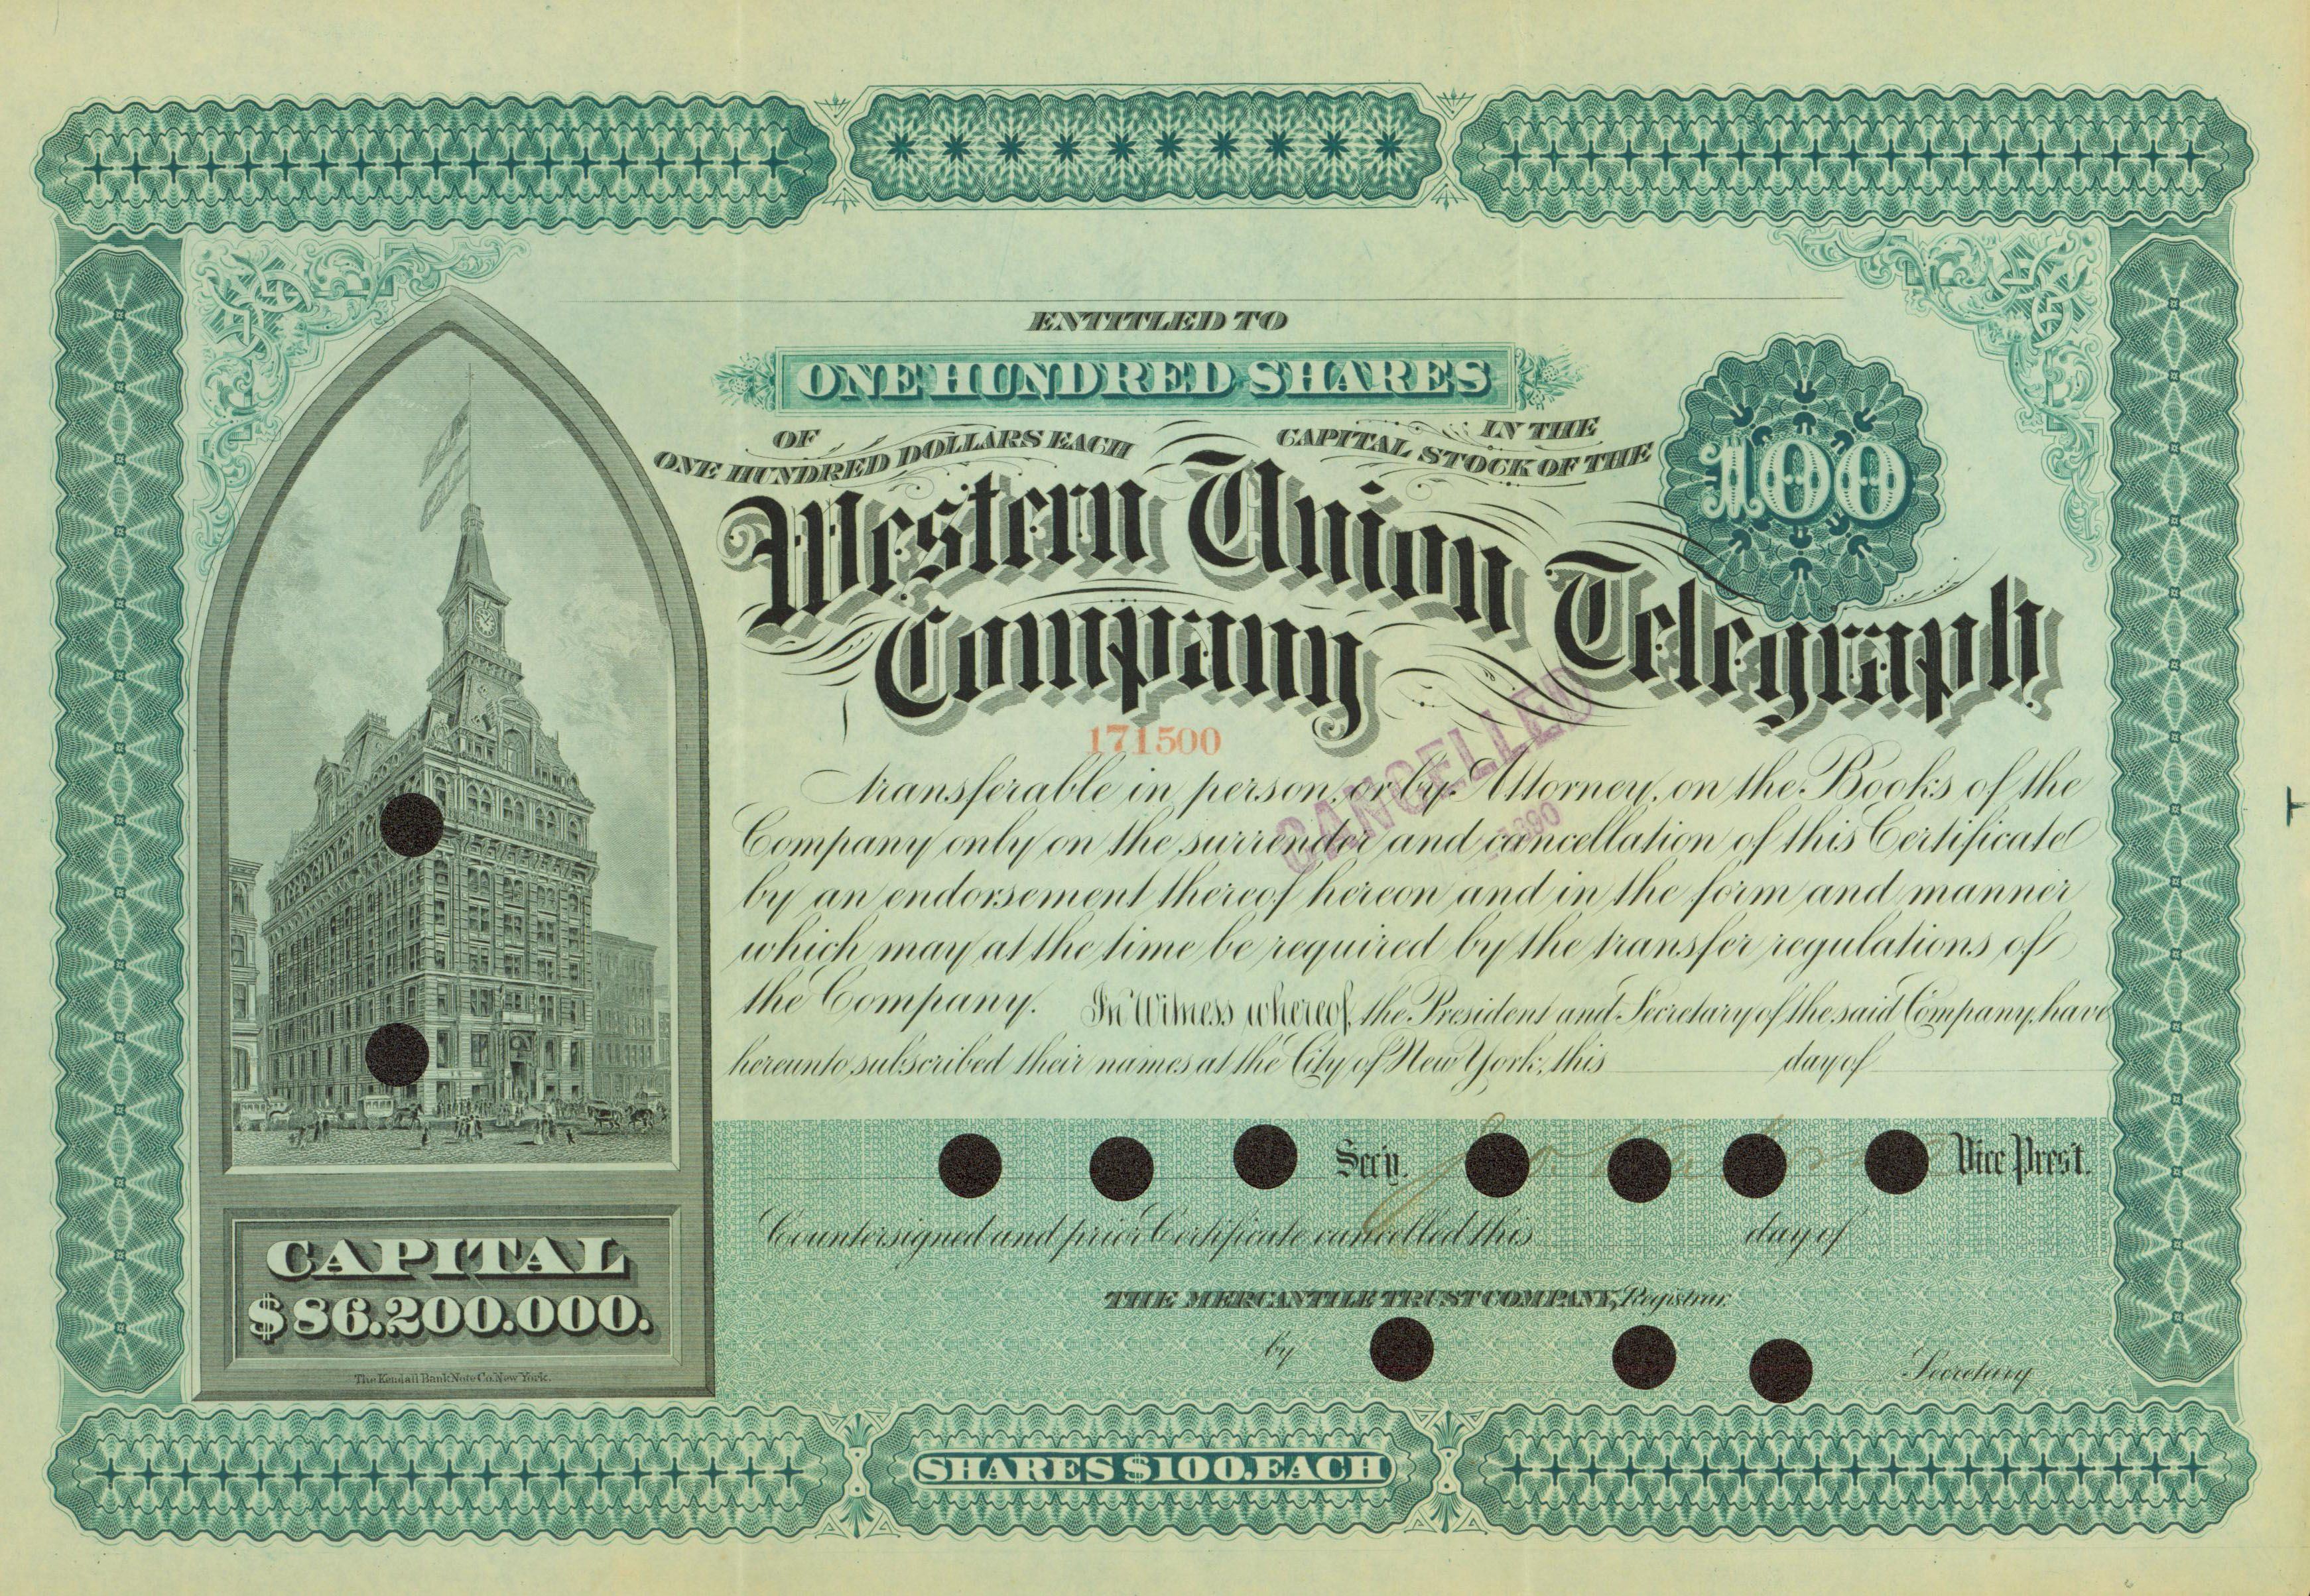 Western Union Telegraph Company Stock Certificate 1890 Stocks And Bonds Stock Certificates Dow Jones Index